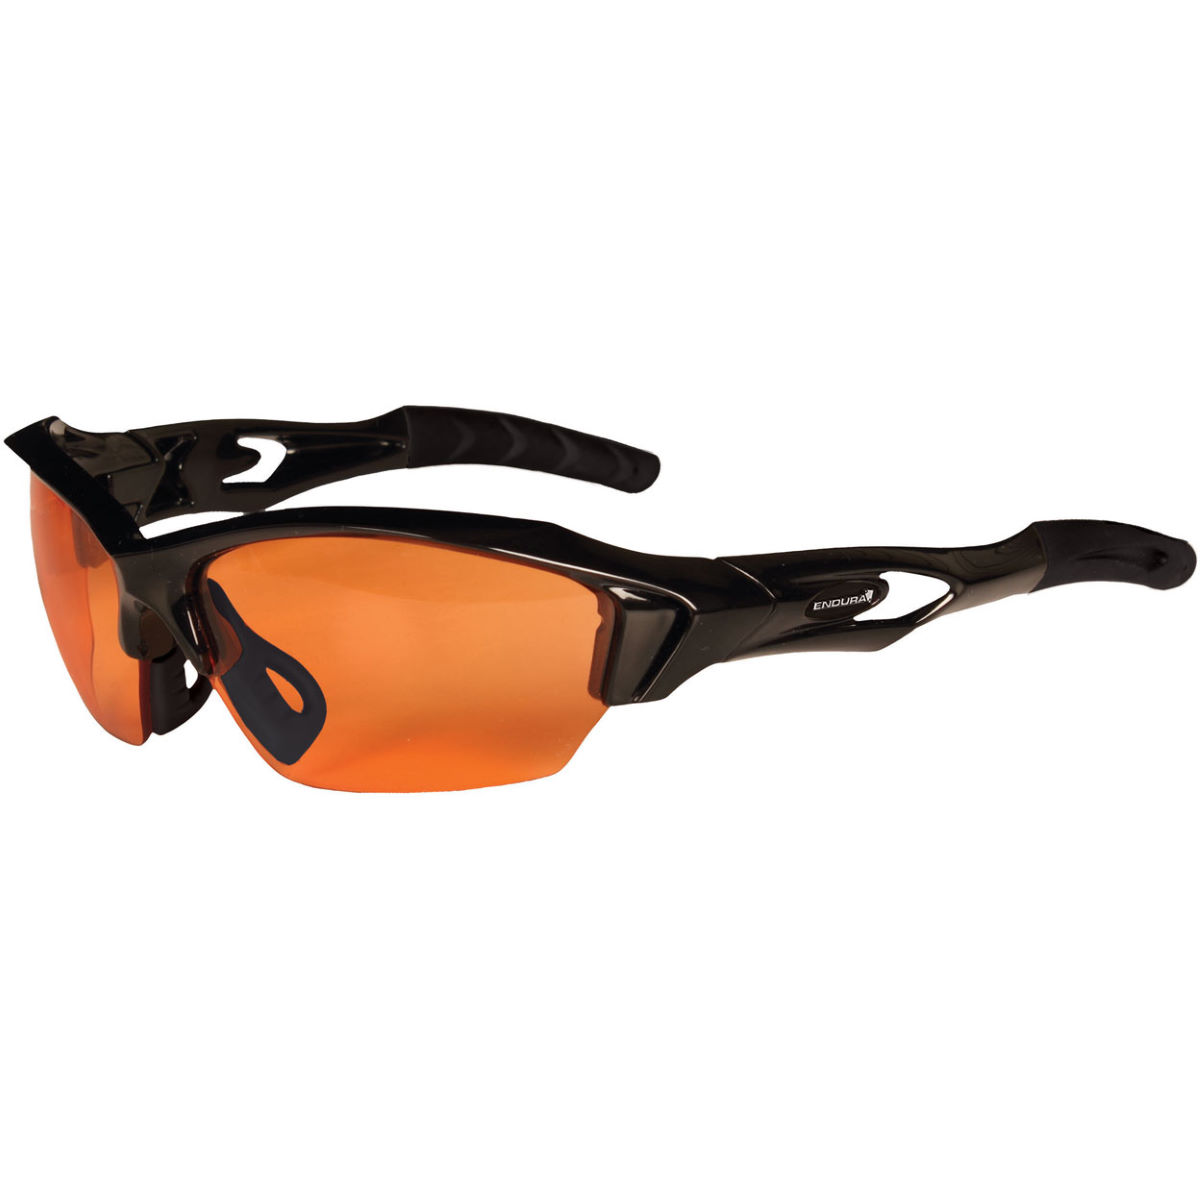 Endura Guppy Triple Lens Sunglasses